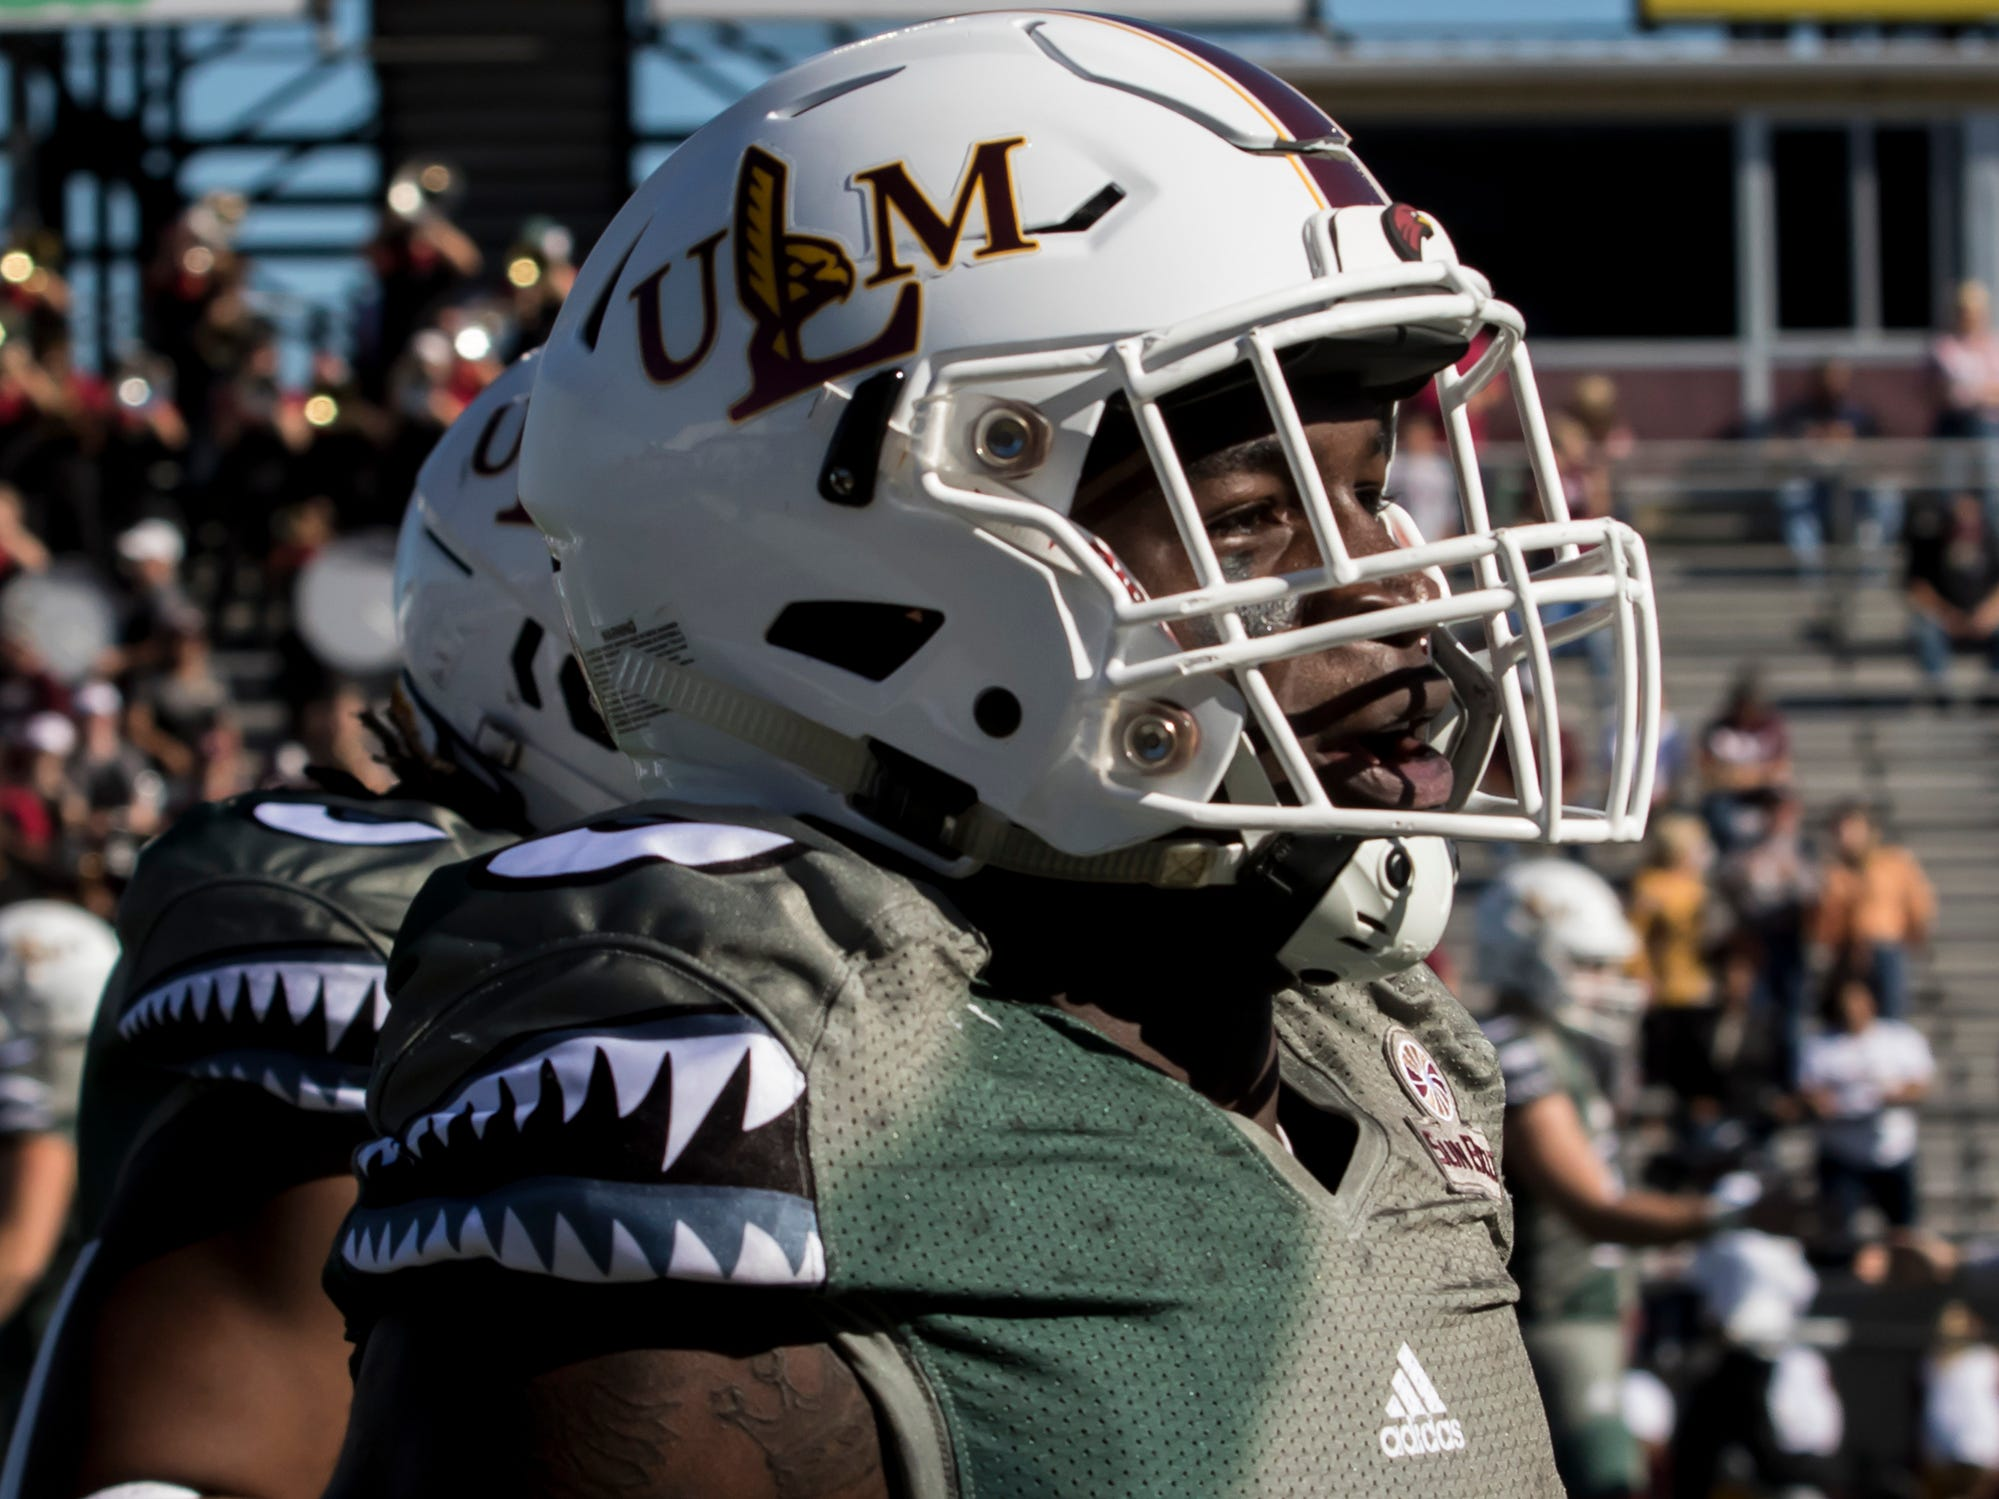 University of Louisiana at Monroe came up with a 44-25 win over Georgia Southern at Malone Stadium in Monroe, La. on Nov. 3.